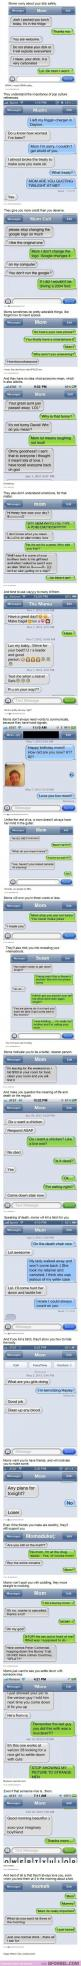 """Hilarious Mom Texts that show you why Moms are the best..The text about """"Courtney"""" running the bunny over, that would be something my mom would do to me!!!: Funny Texts, Giggle, Moms Texting, Autocorrect, Mom Texts, Text Messages, Funny Moms"""